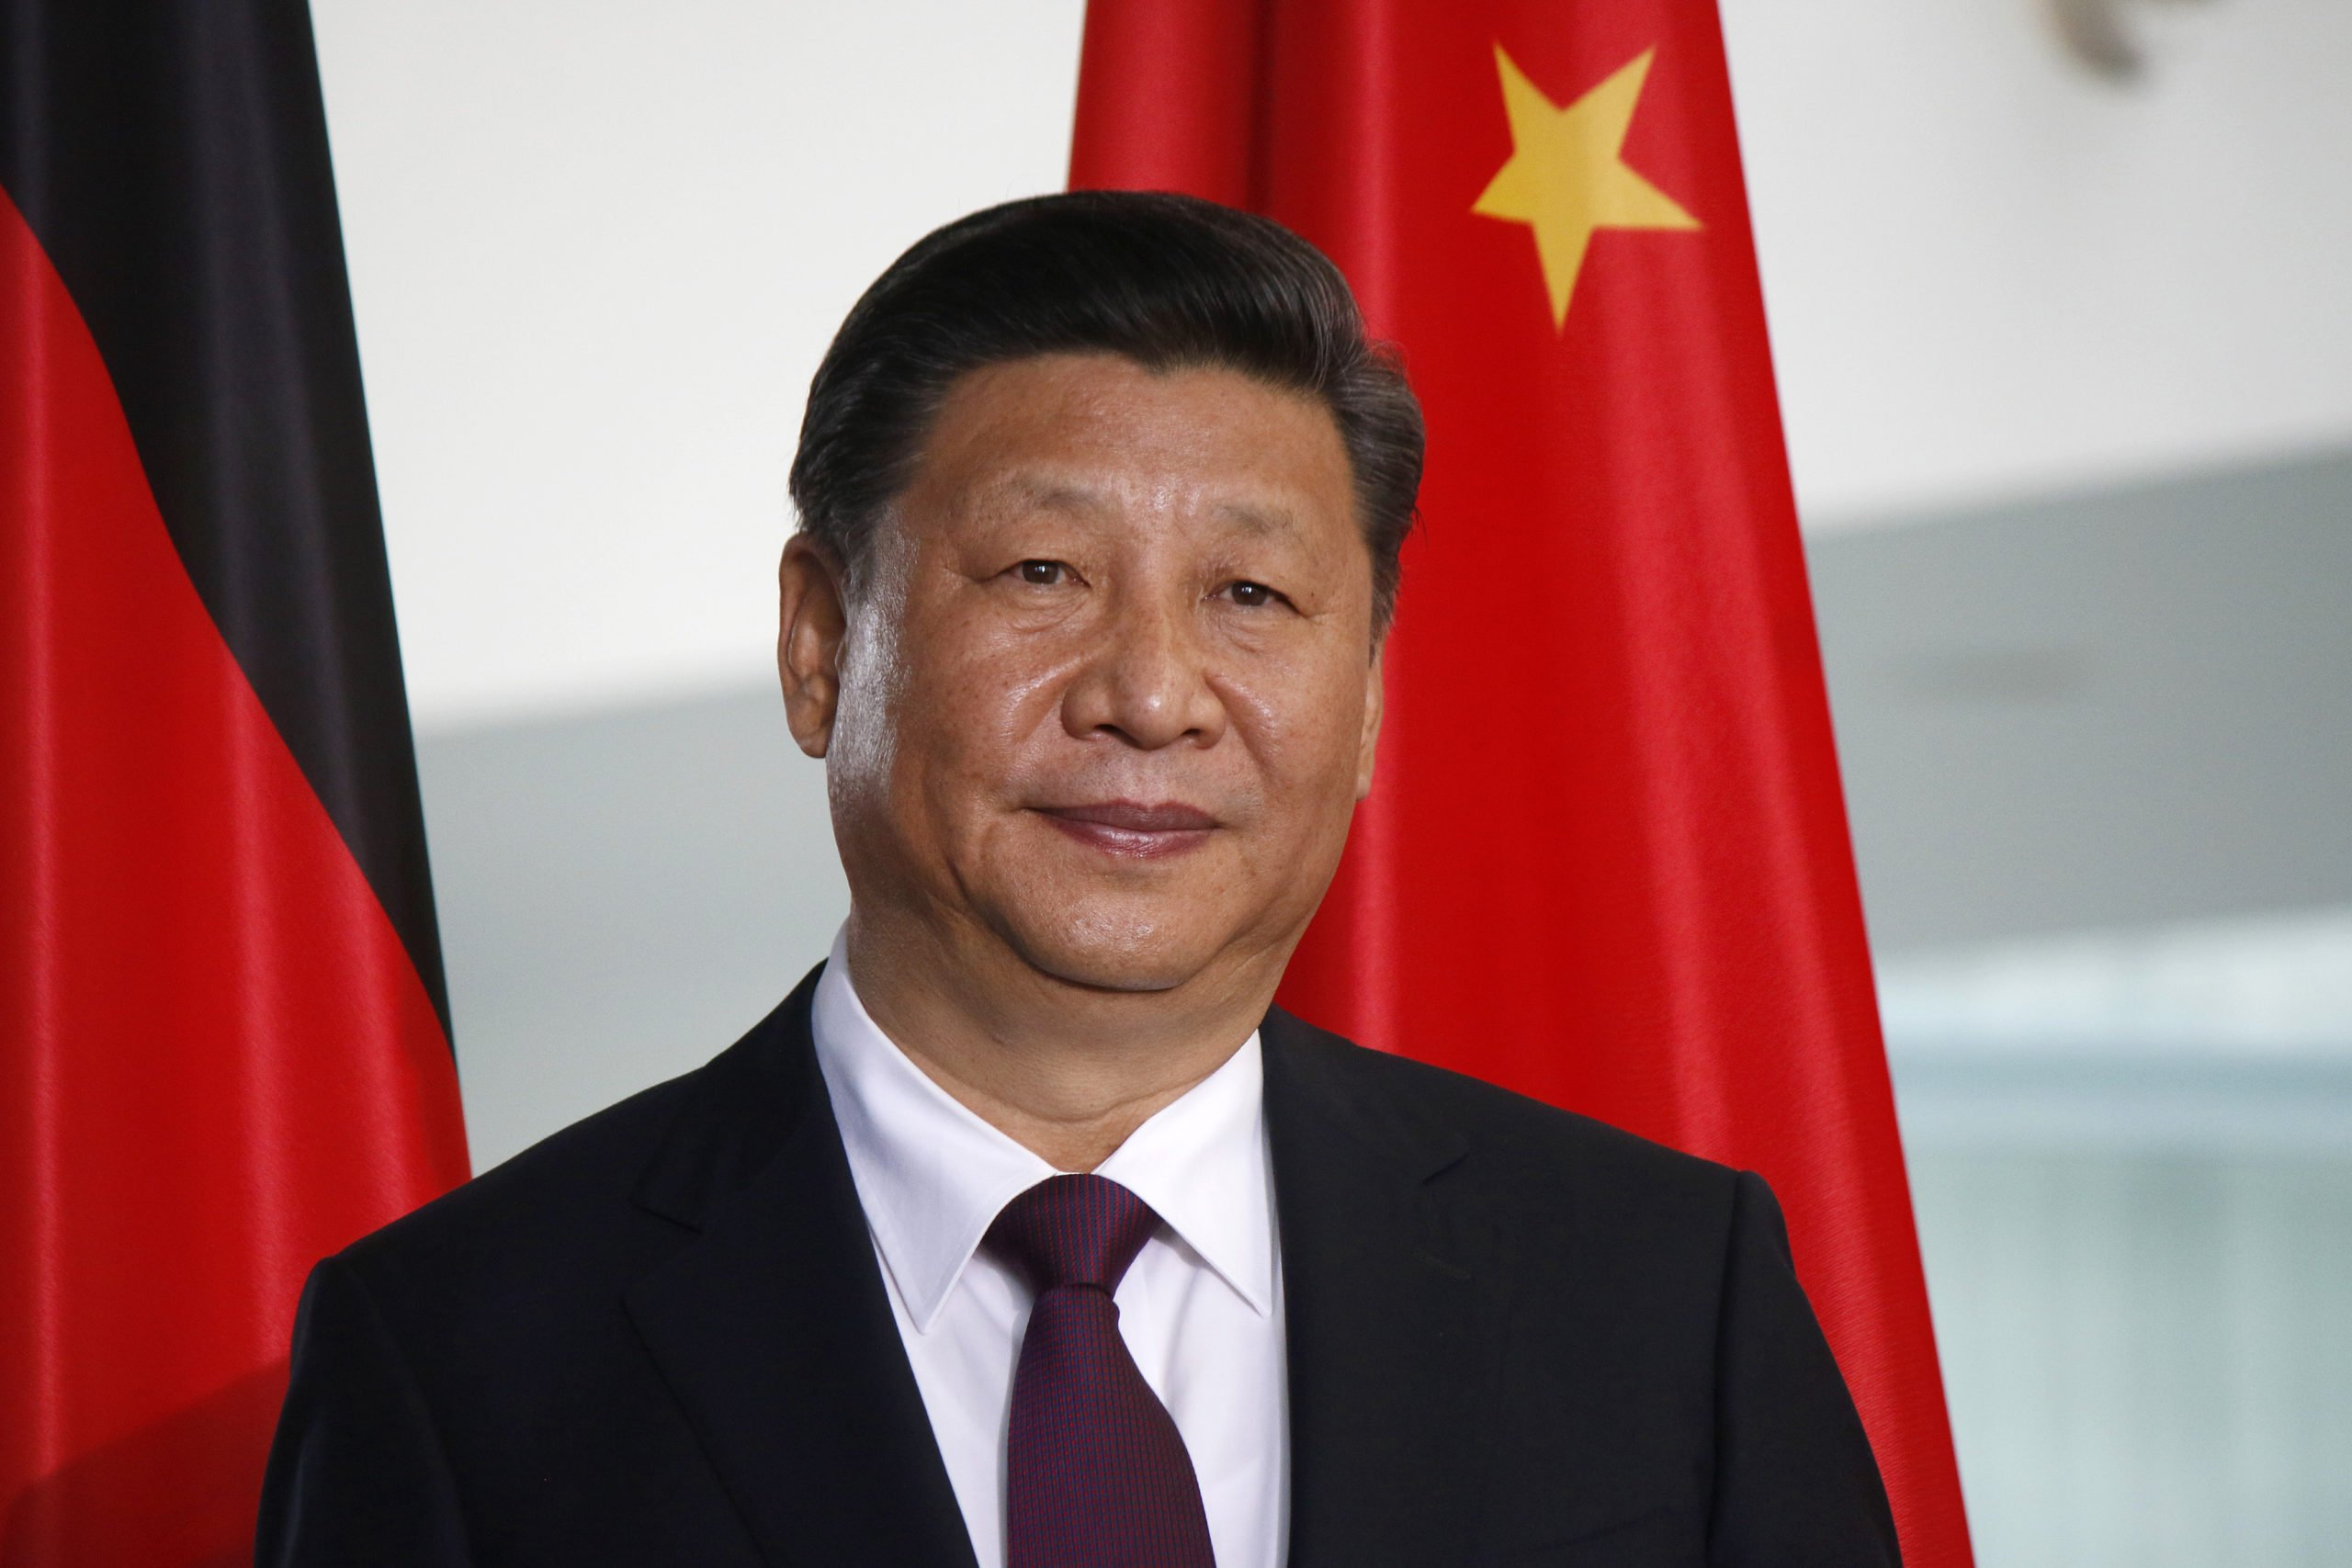 Presidental Xi boosted crypto with endorsement of blockchain technology